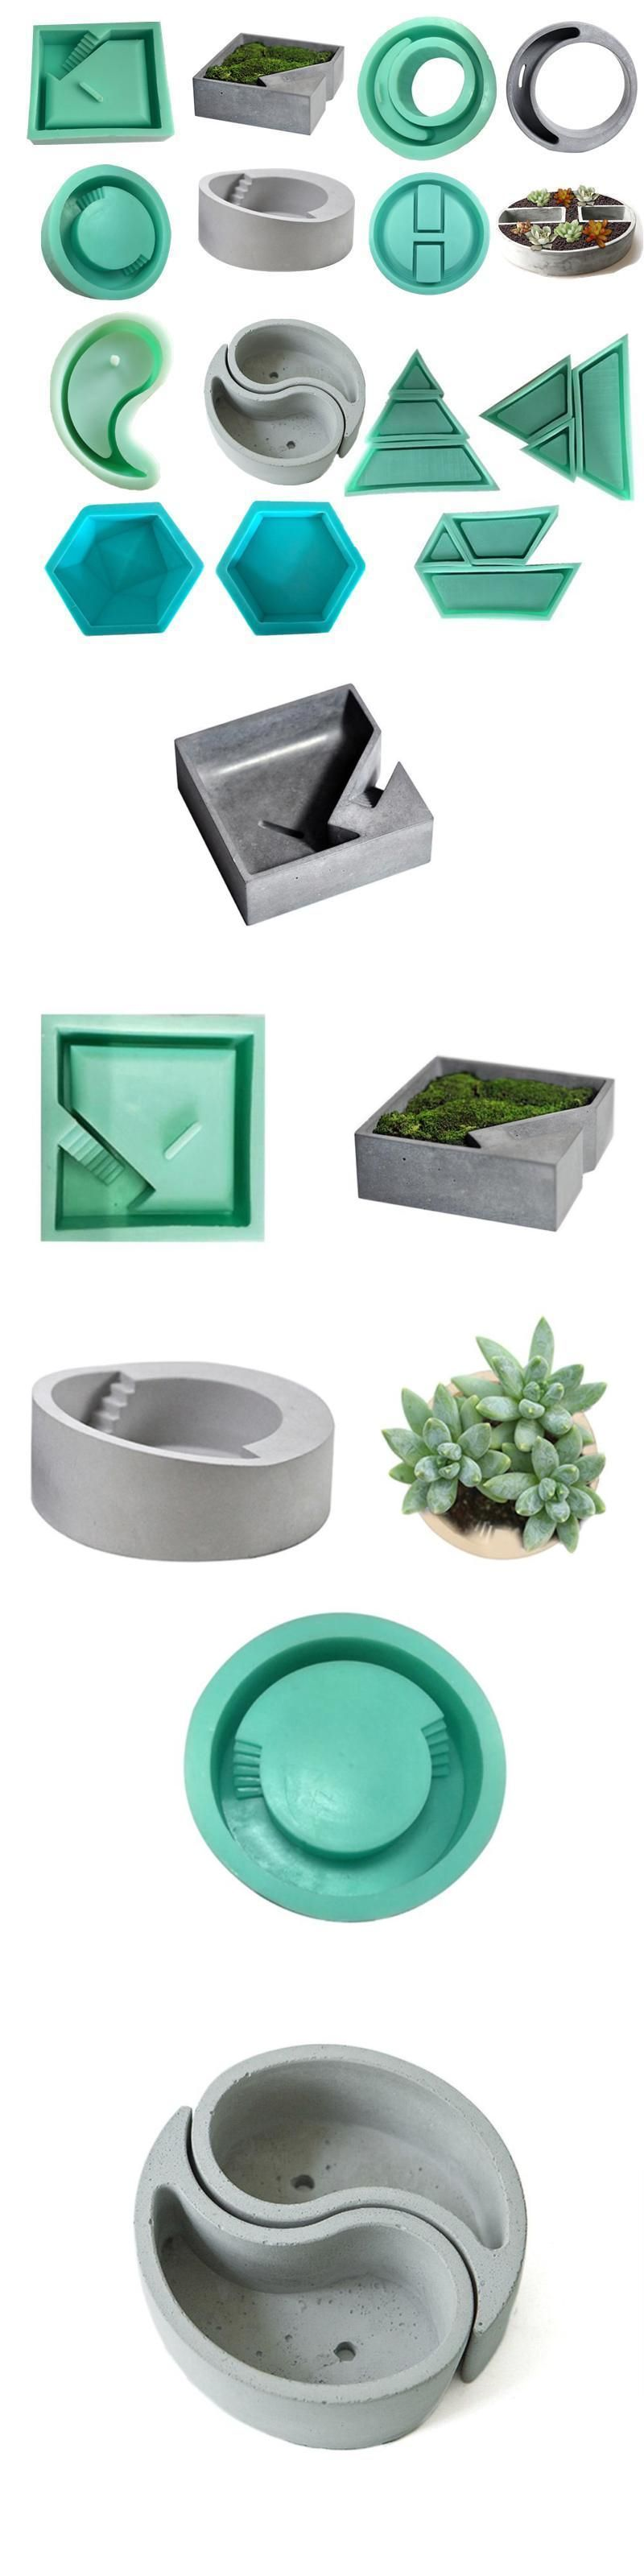 Soap Molds 28116 Craft Clay Vase Cactus Planter Mold